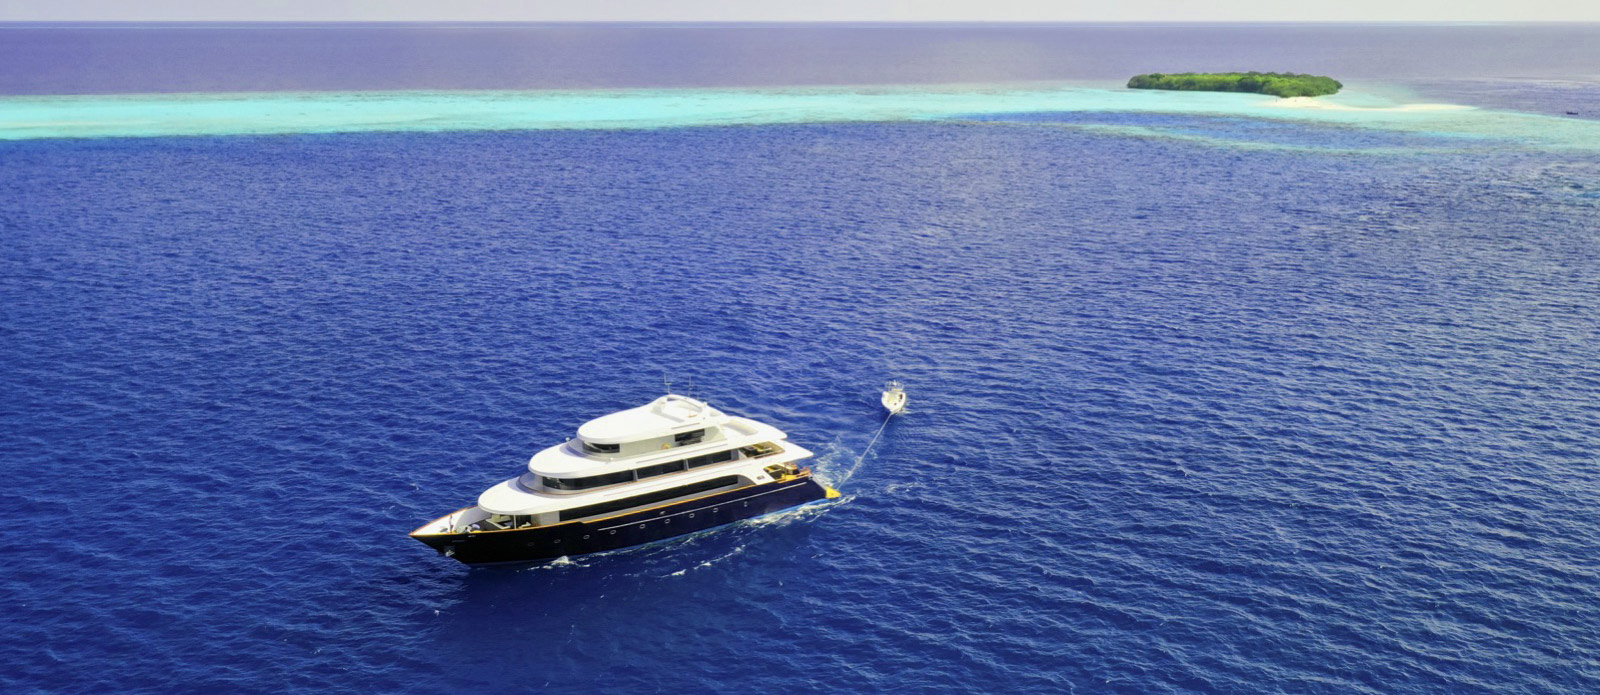 Safira-Luxury-Yacht-For-Sale-Exterior-3